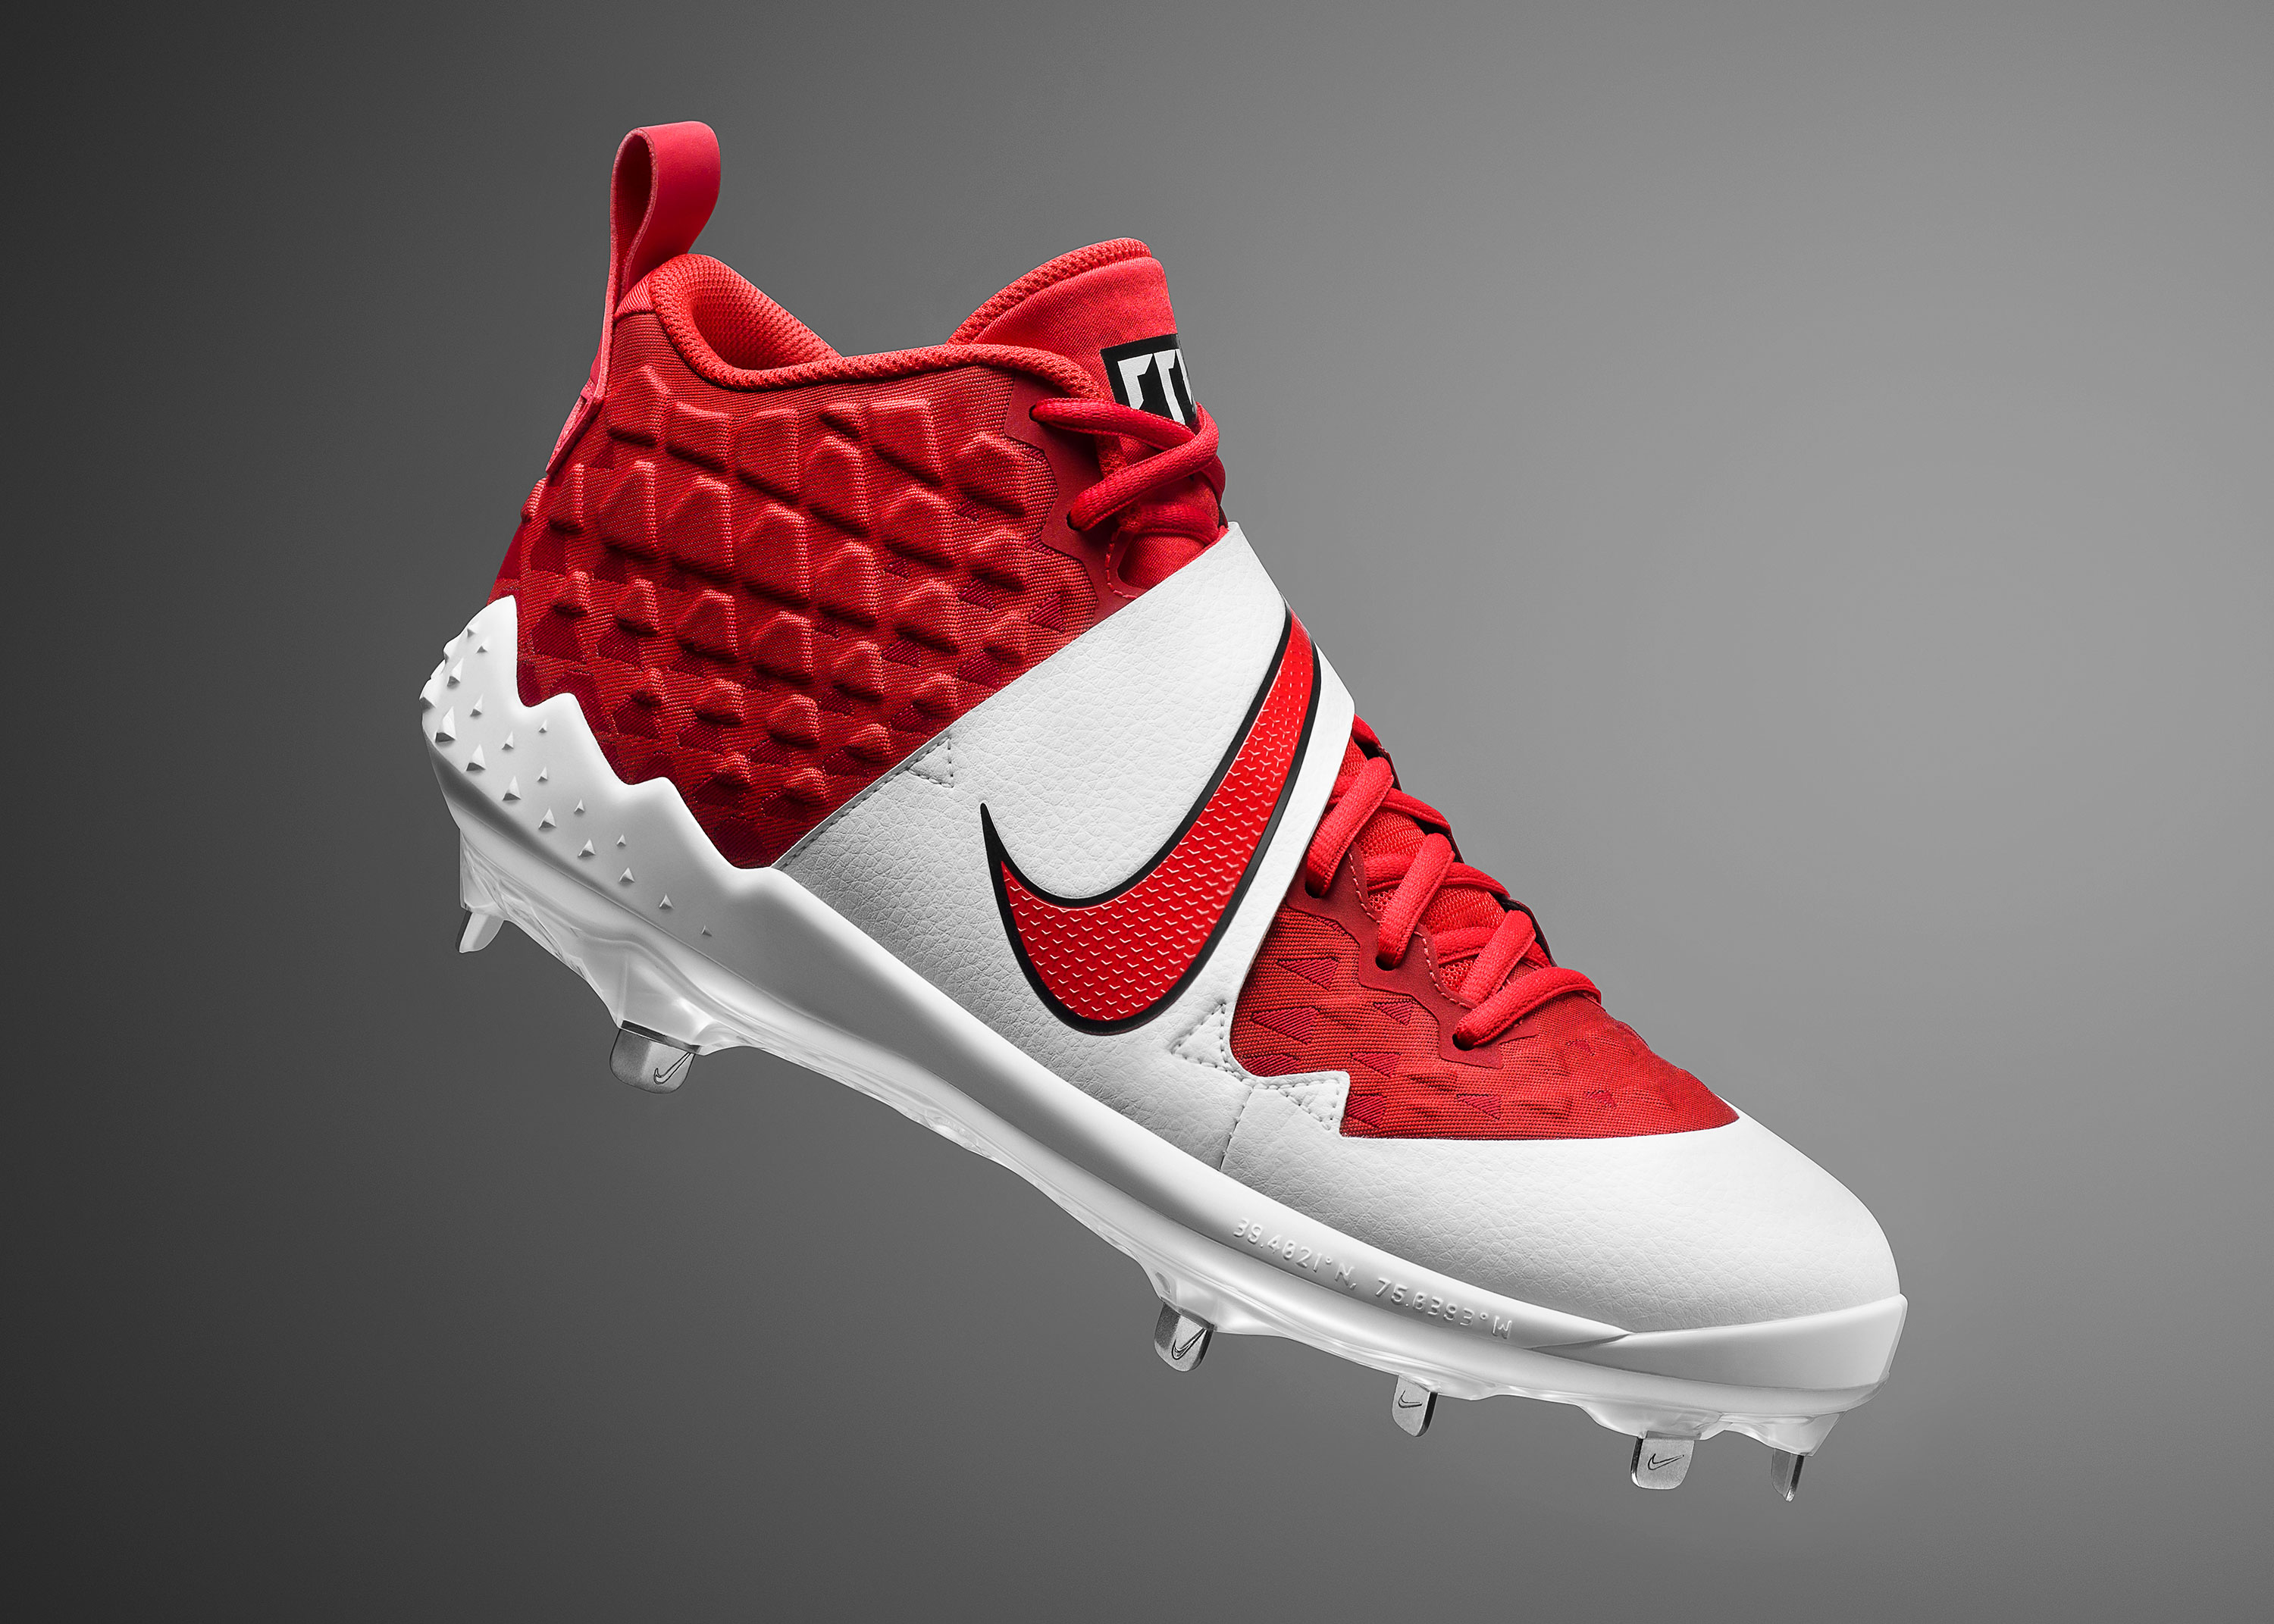 Force Zoom Trout 6 Cleats and Trainers